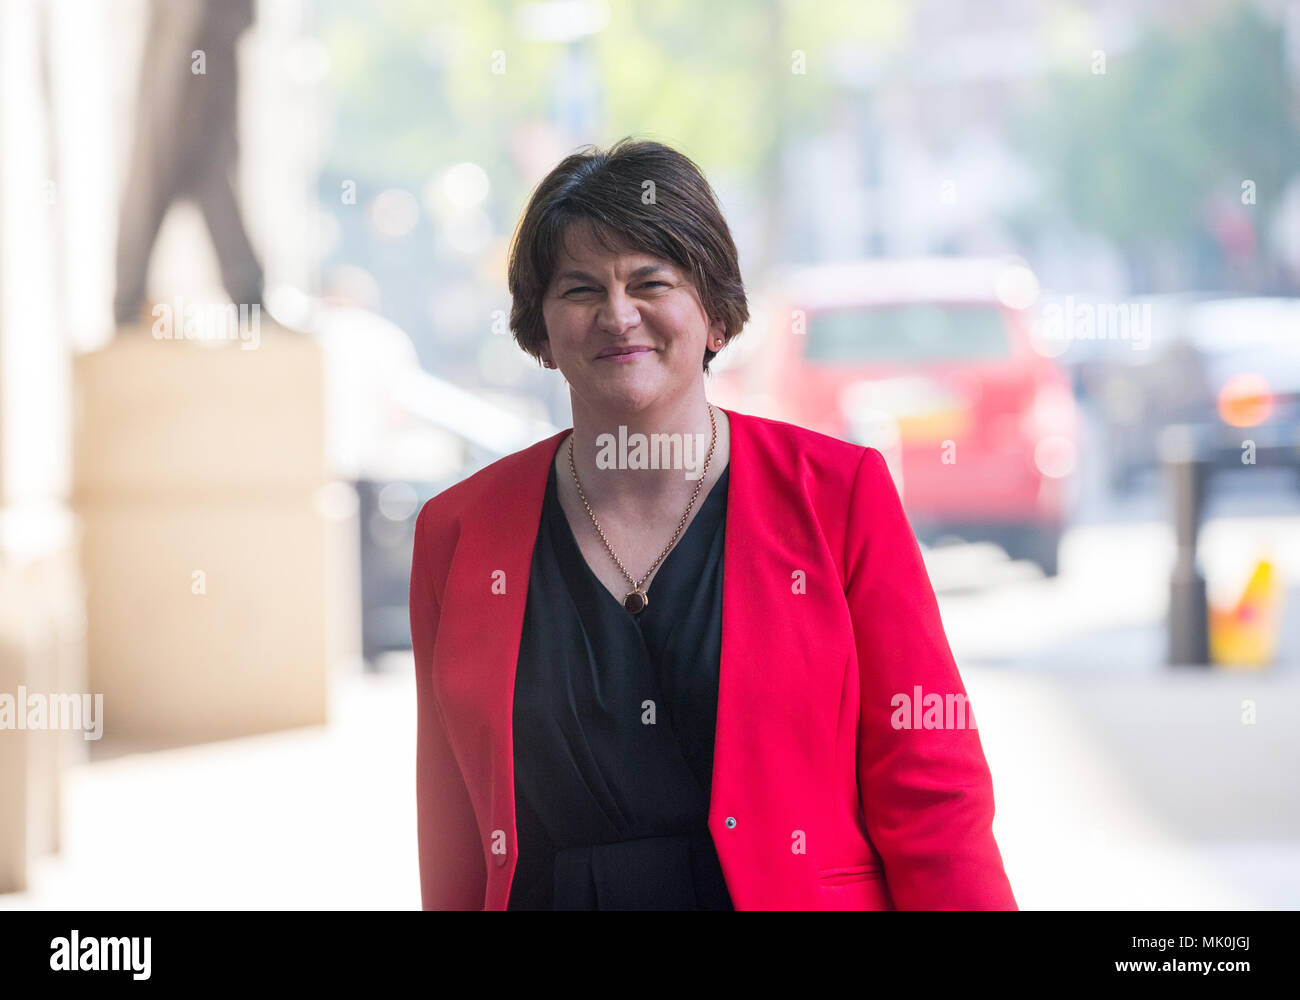 Arlene Foster, Leader of the Democratic Unionist Party, arrives for the Andrew Marr Show at the BBC - Stock Image